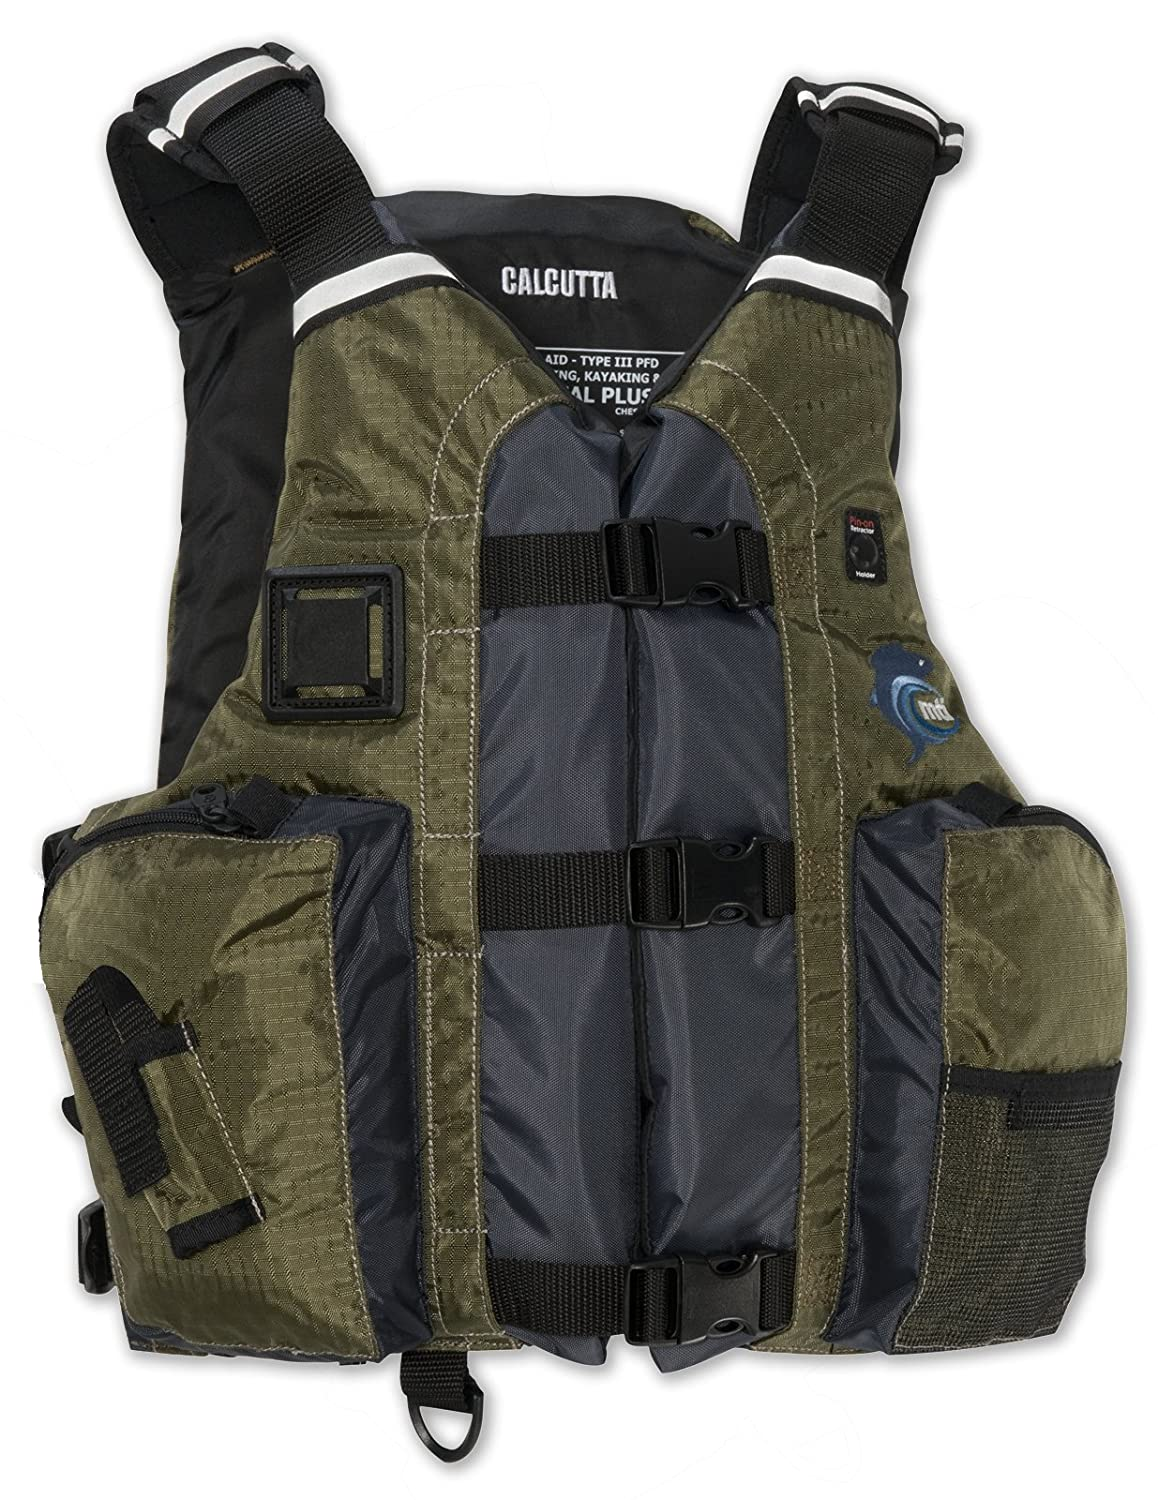 MTI Adventurewear Calcutta Kayak Fishing Angler PFD Life Jacket